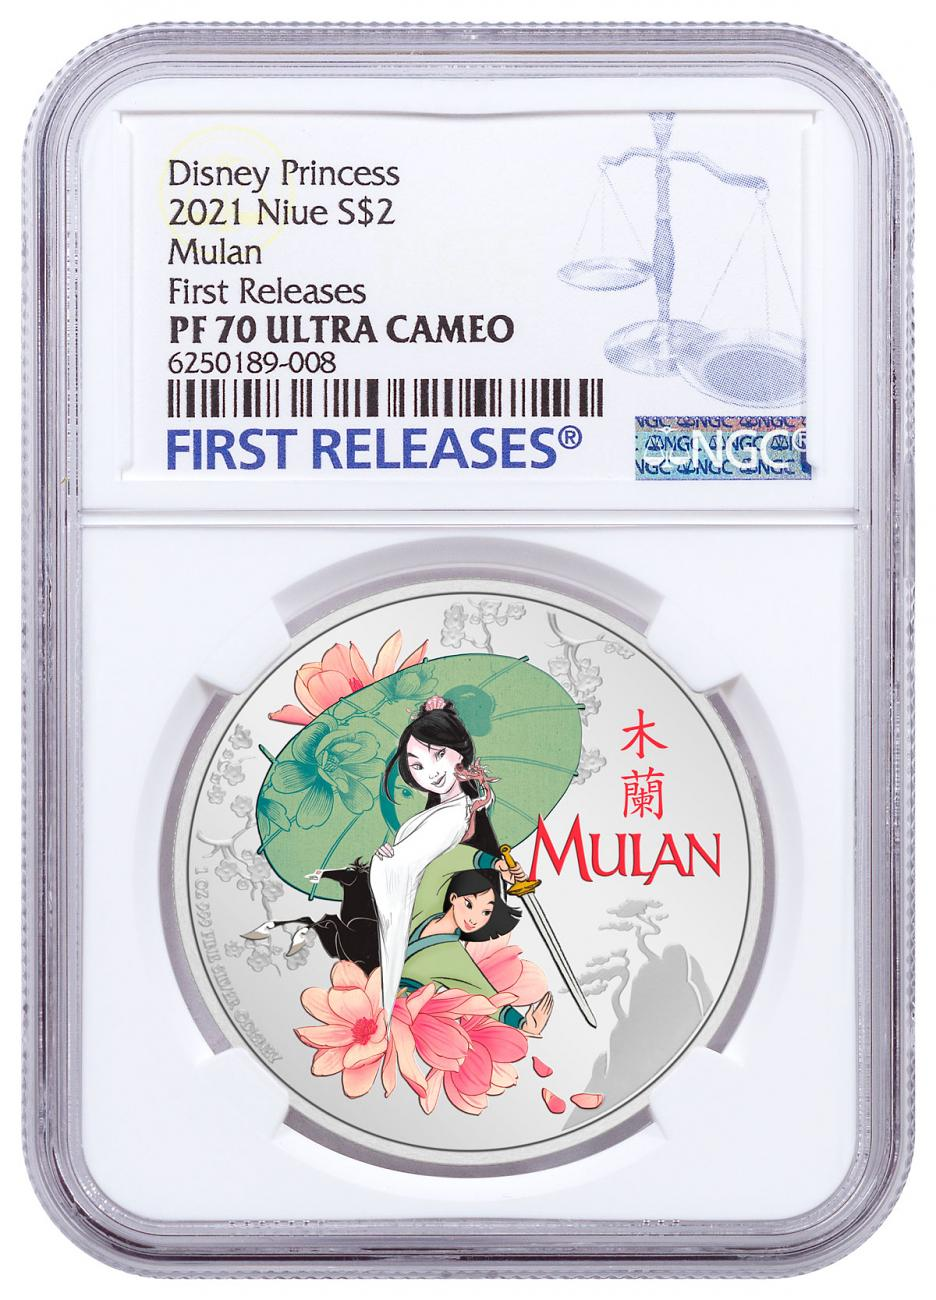 2021 Niue Disney Princess - Mulan 1 oz Silver Colorized Proof $2 Coin NGC PF70 UC FR With OGP